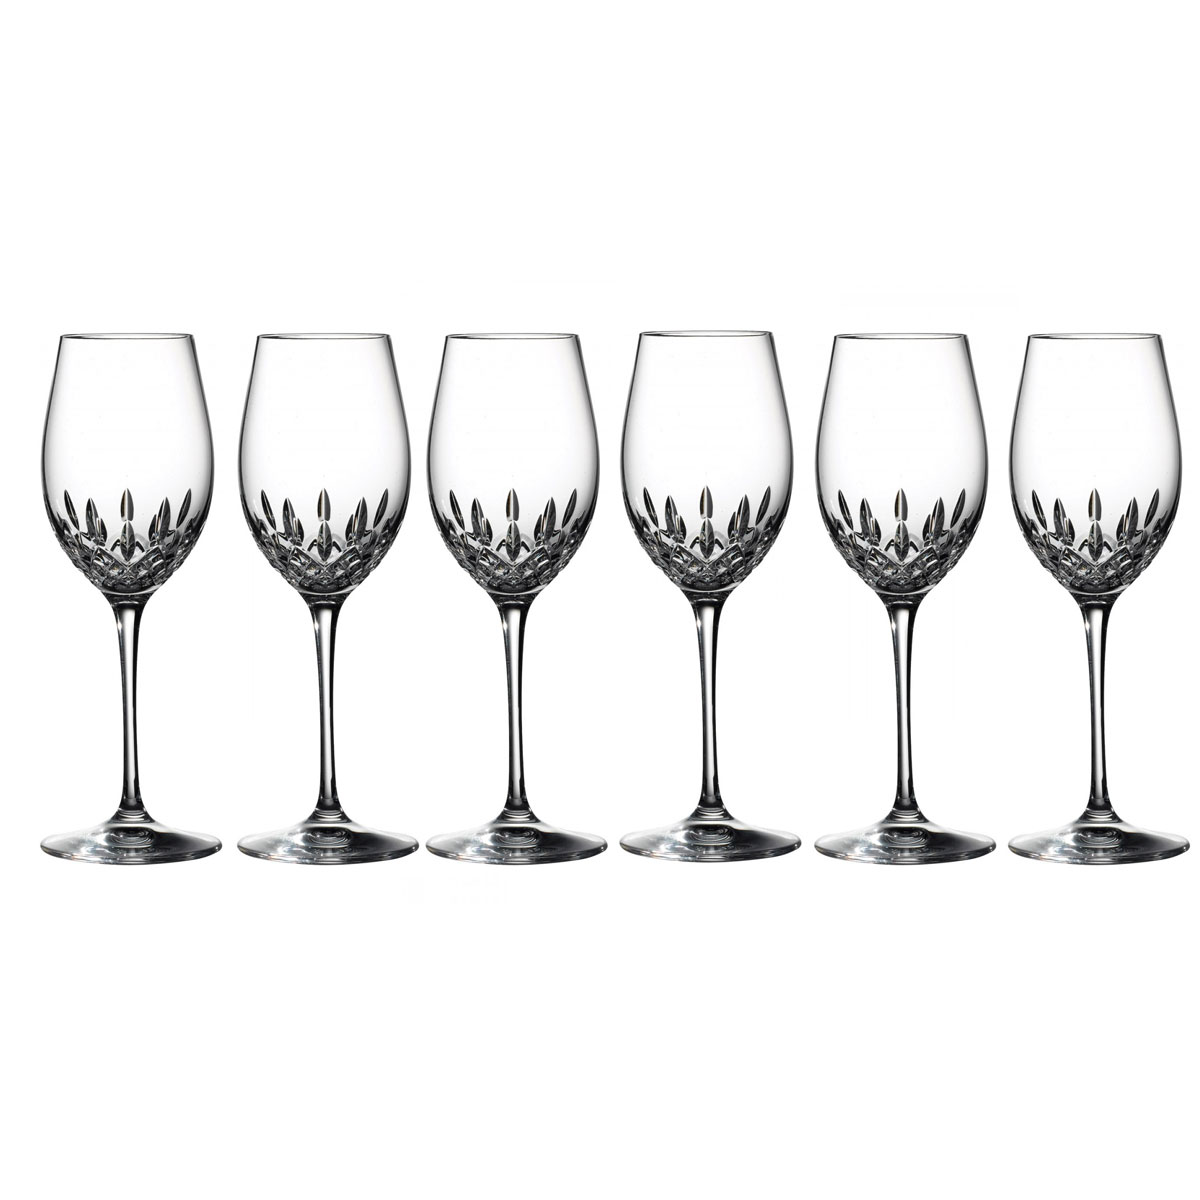 Waterford Crystal, Lismore Essence Crystal White Wine, Boxed Set 5+1 Free